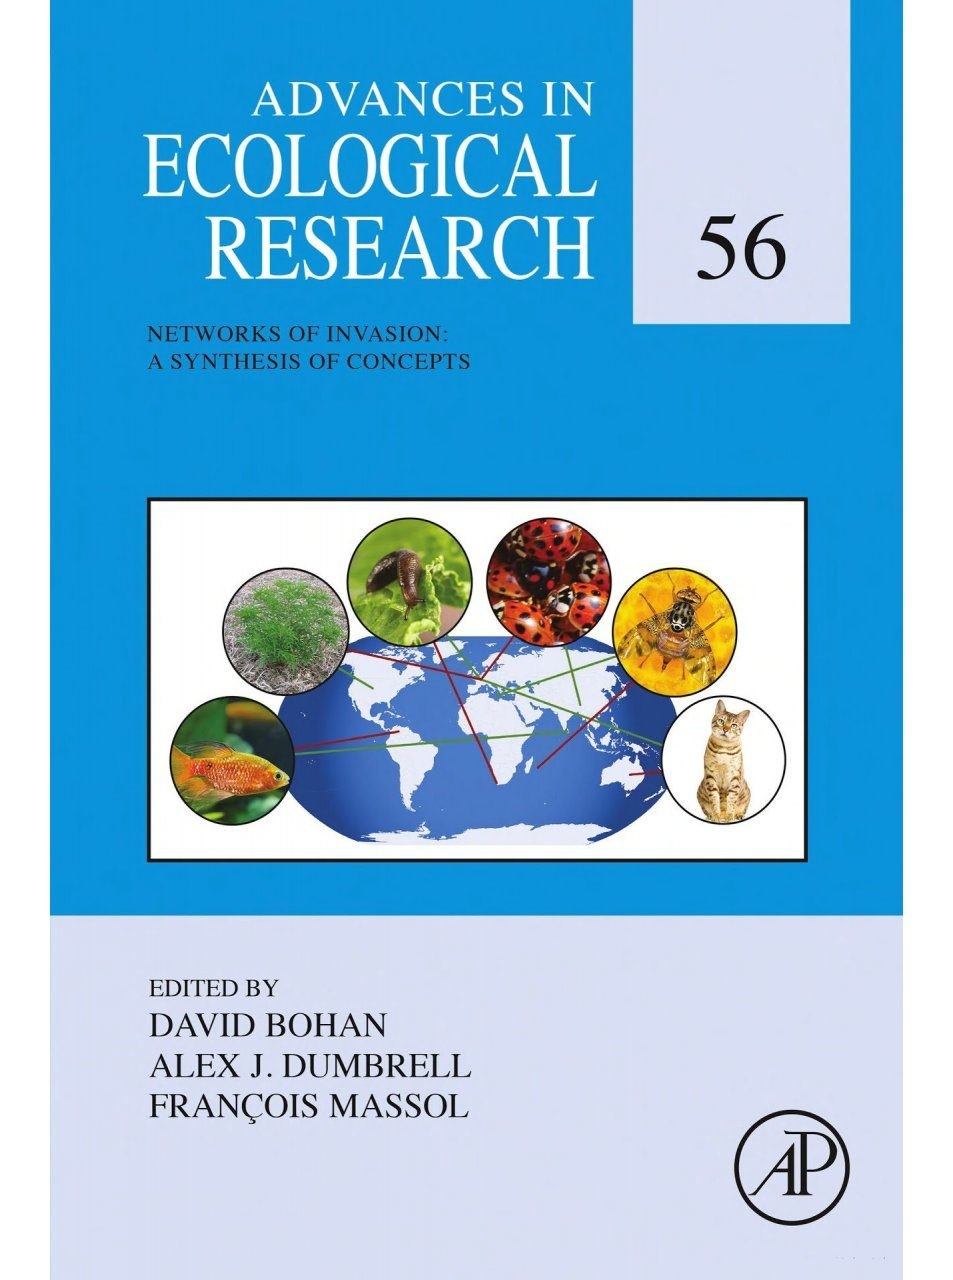 Advances in Ecological Research, Volume 56